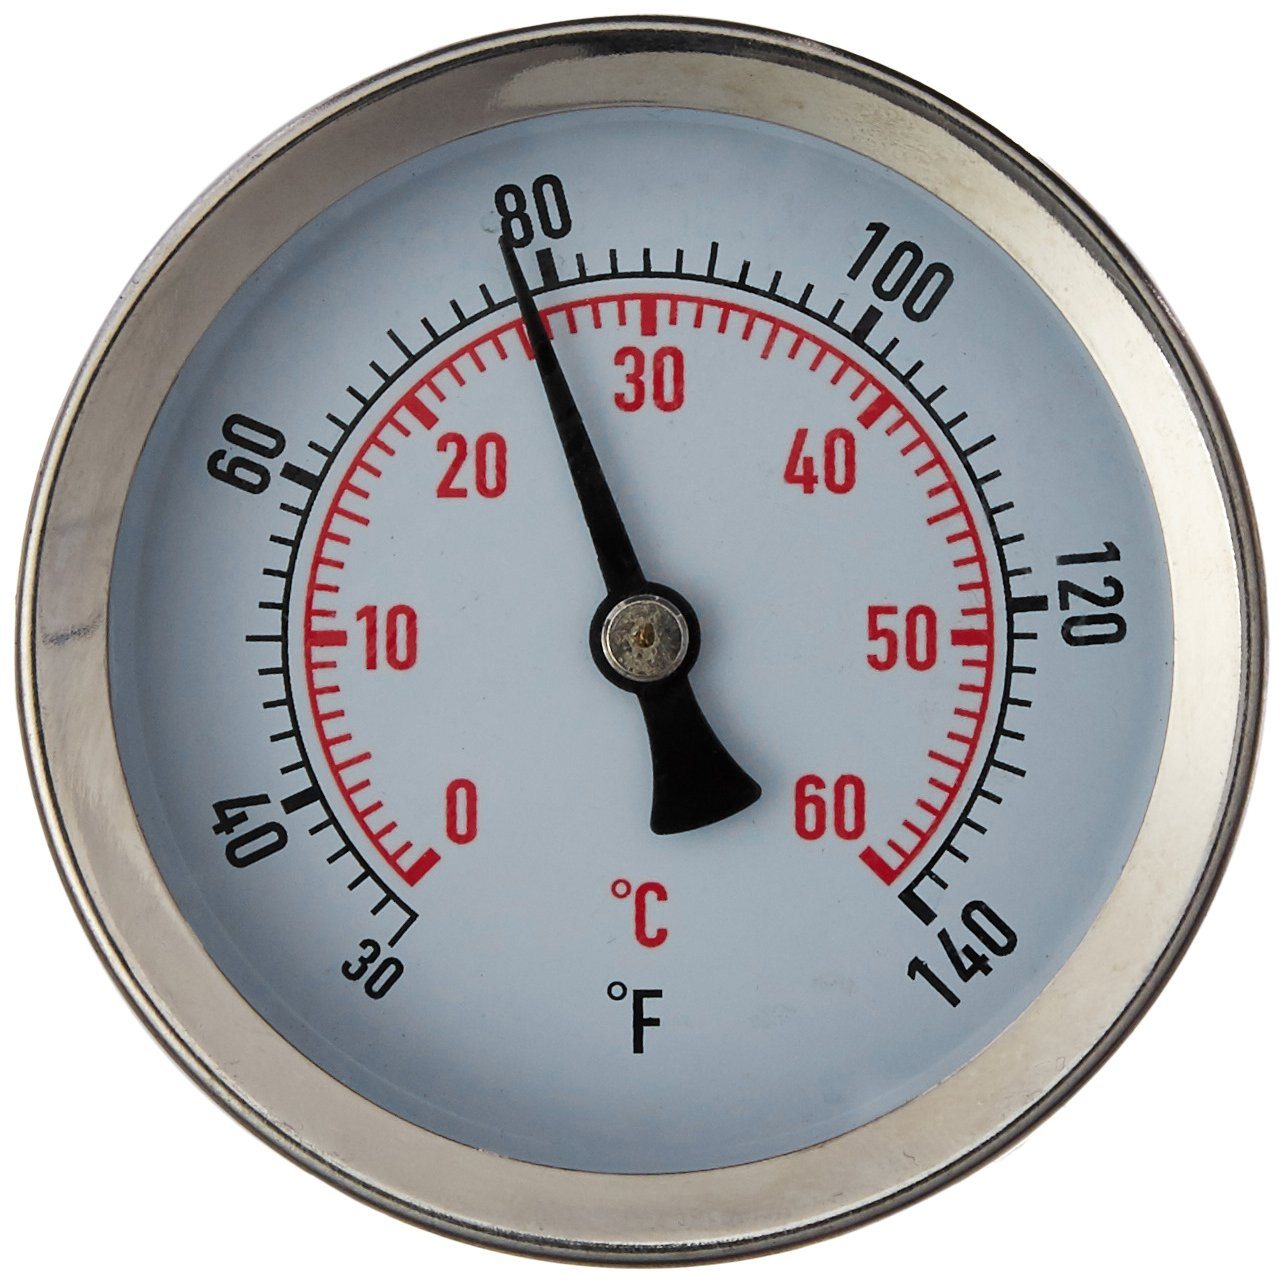 Rapide Fermente Thermomè tre Home Brew Stuff Fast Ferment Thermometer Stainless Steel